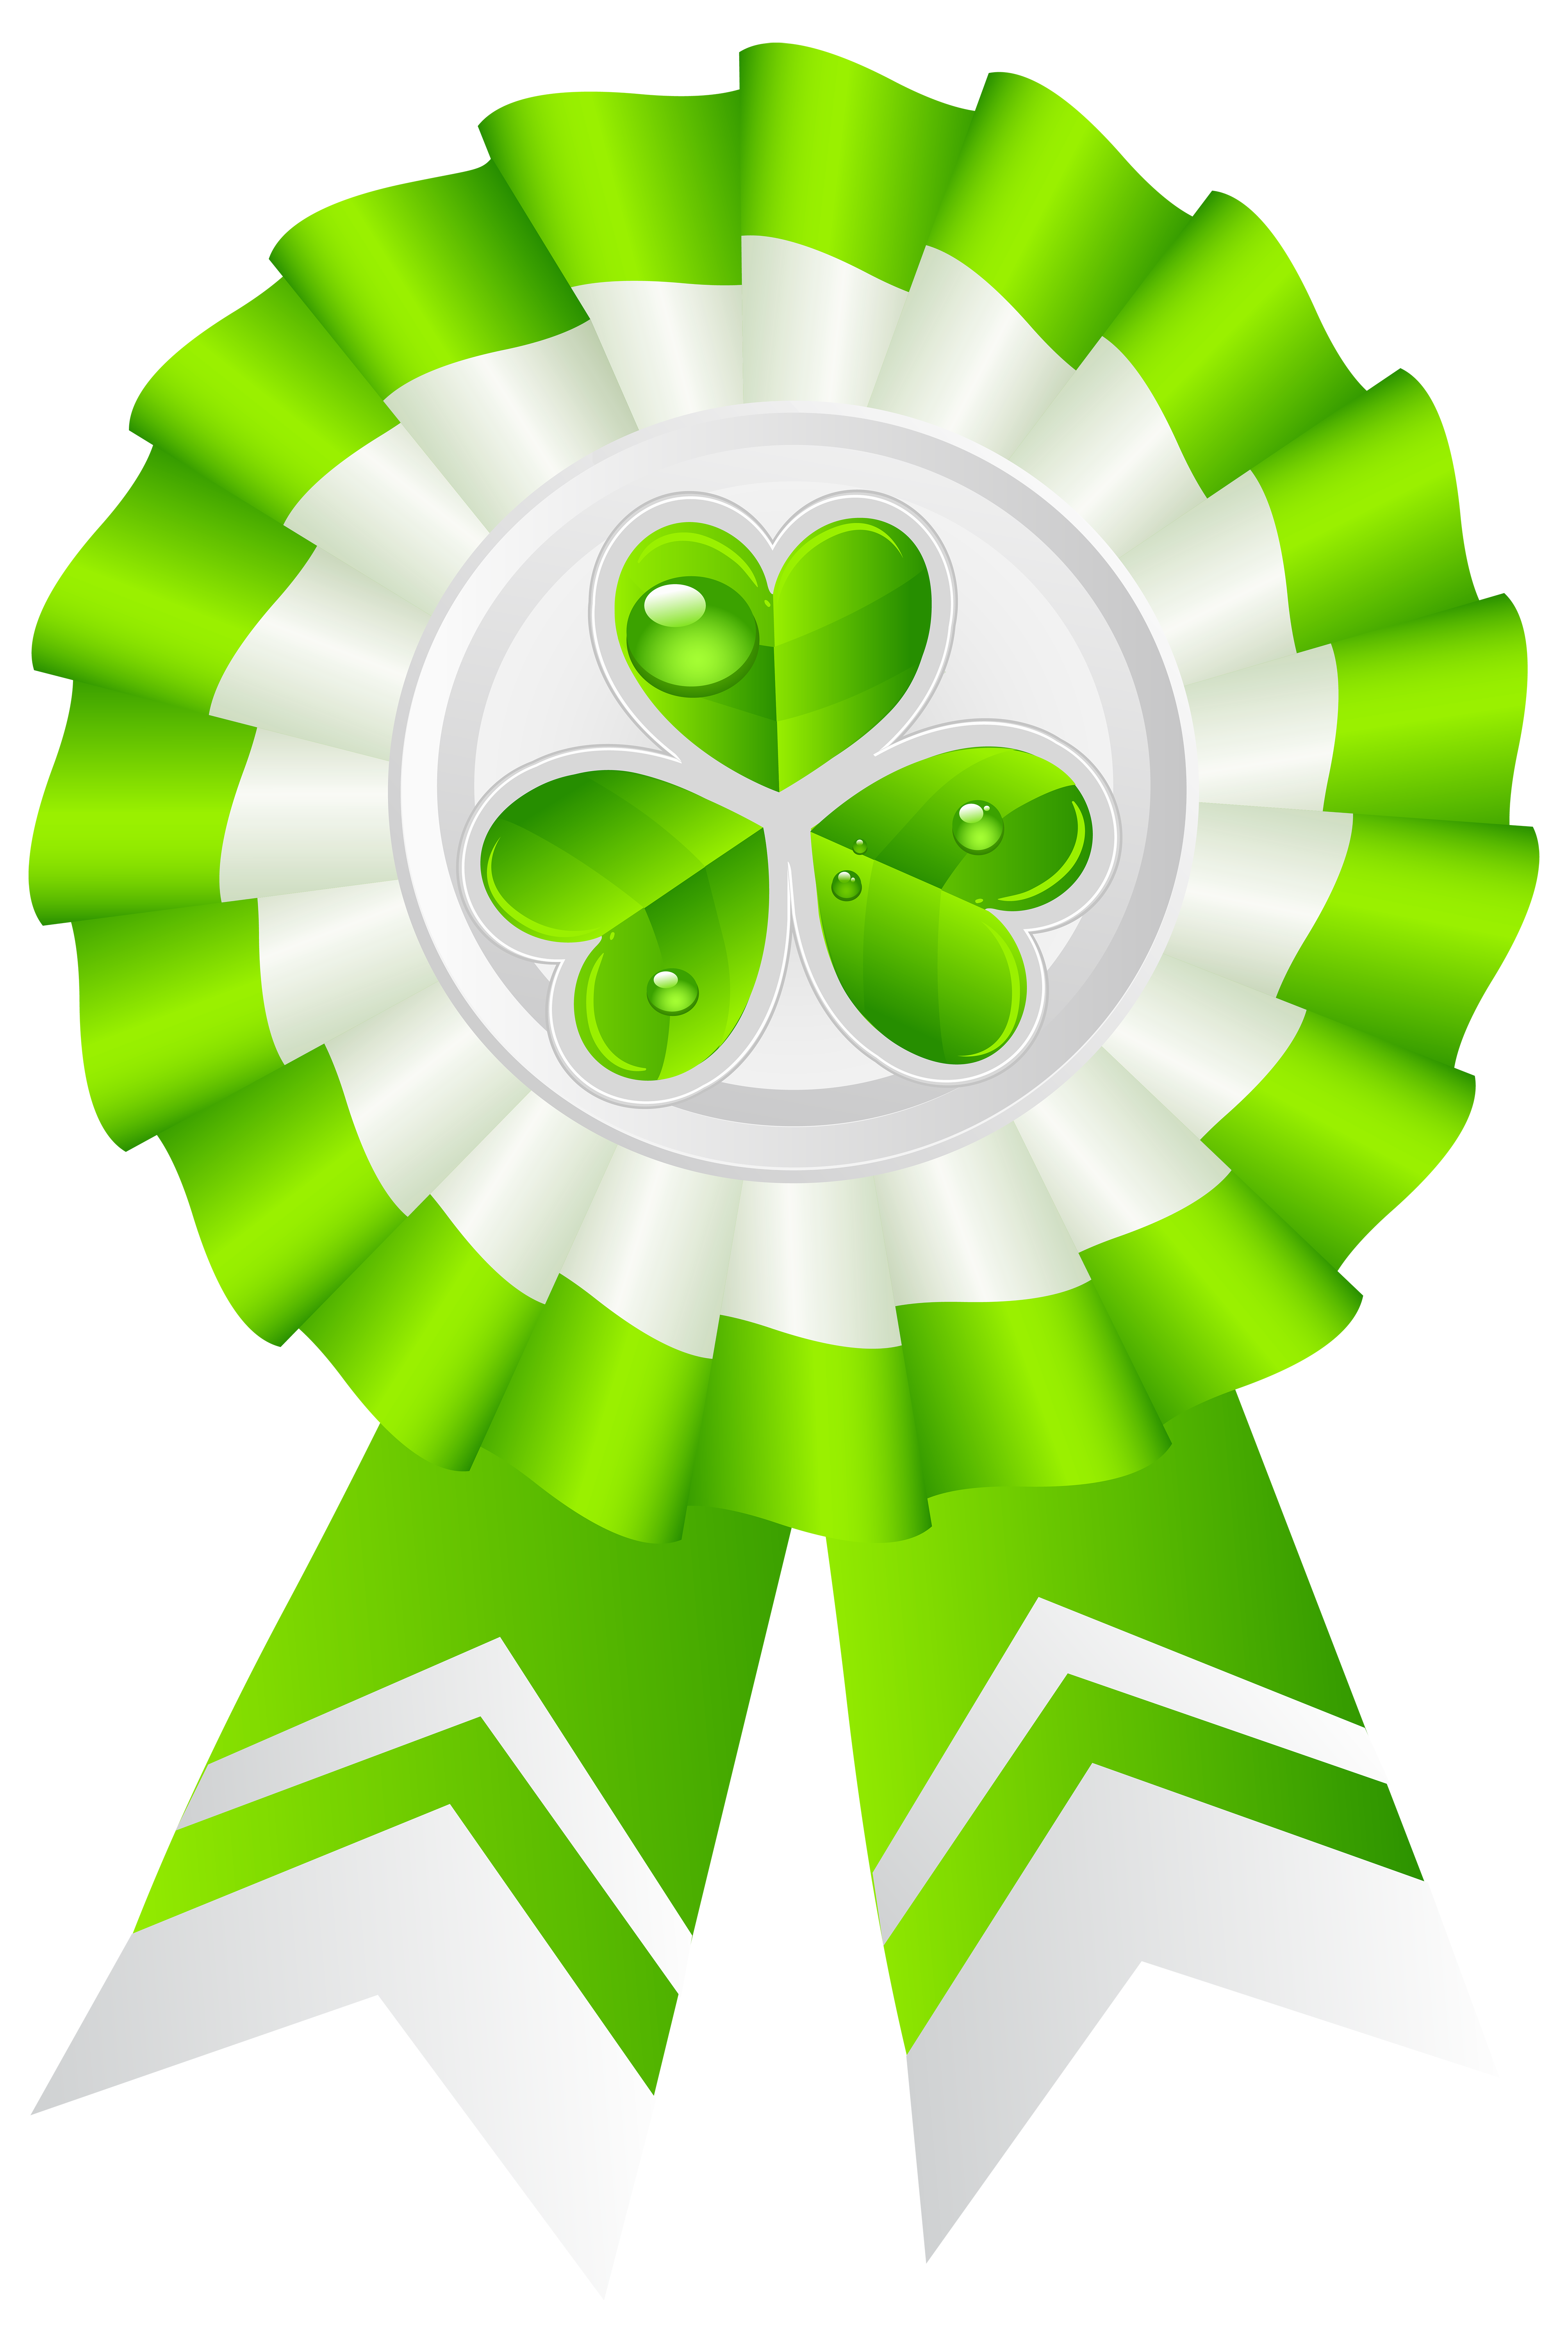 St Patricks Day Seal with Shamrock Transparent PNG Clip Art Image.